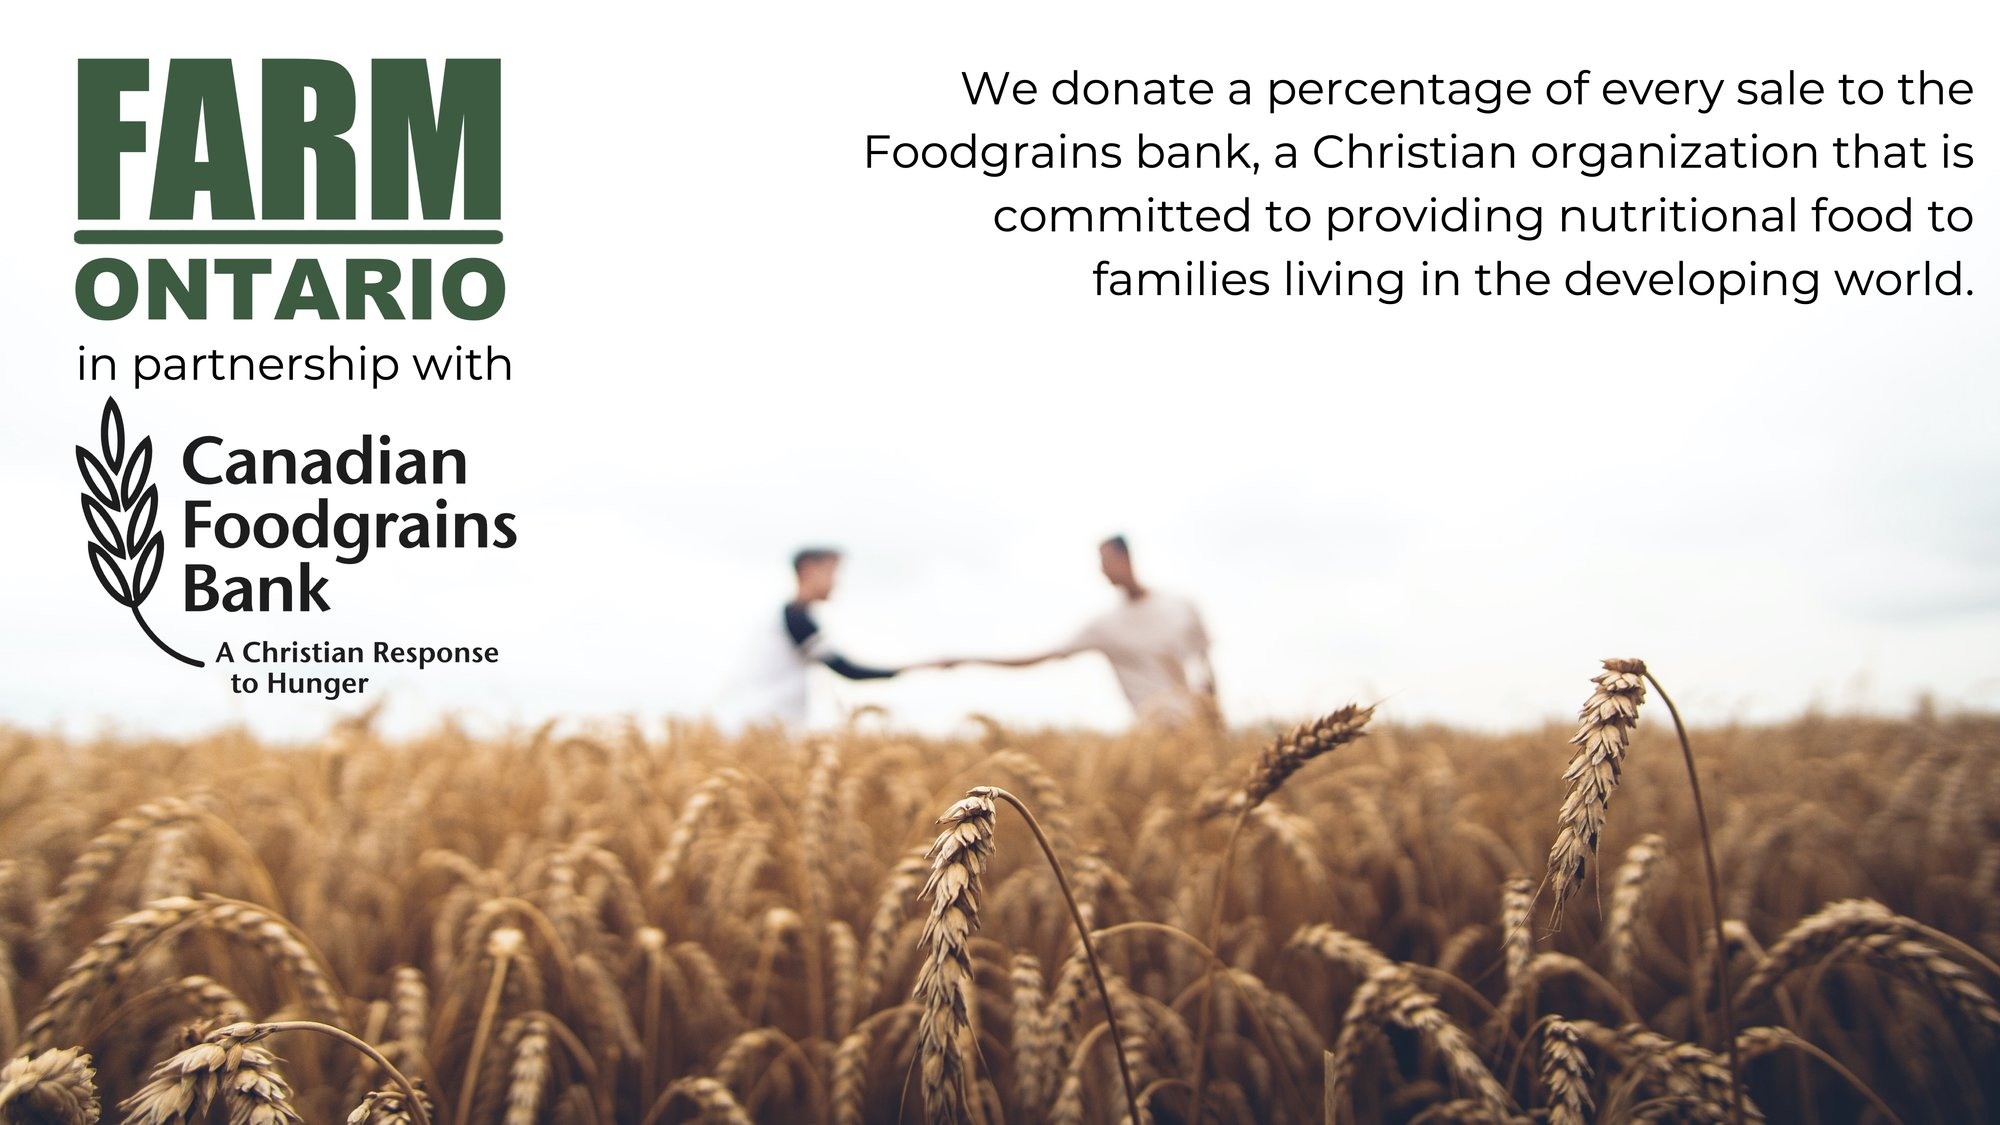 FarmOntario in Partnership with Canadian Foodgrains Bank